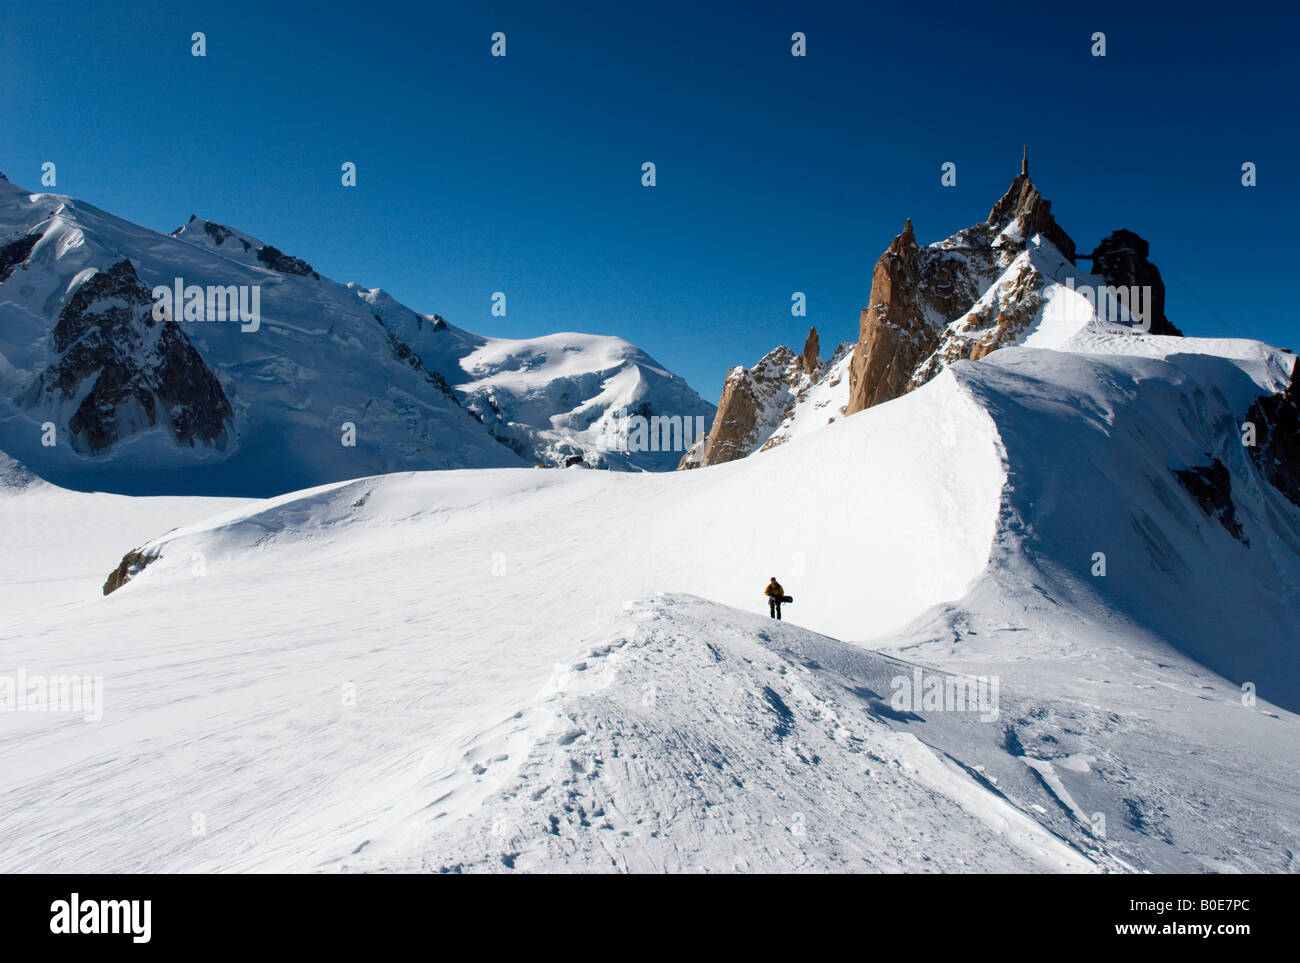 Snowboarder walking on ridge towards Grand Envers du Plan variant of Vallée Blanche, Aiguille du Midi in background - Stock Image